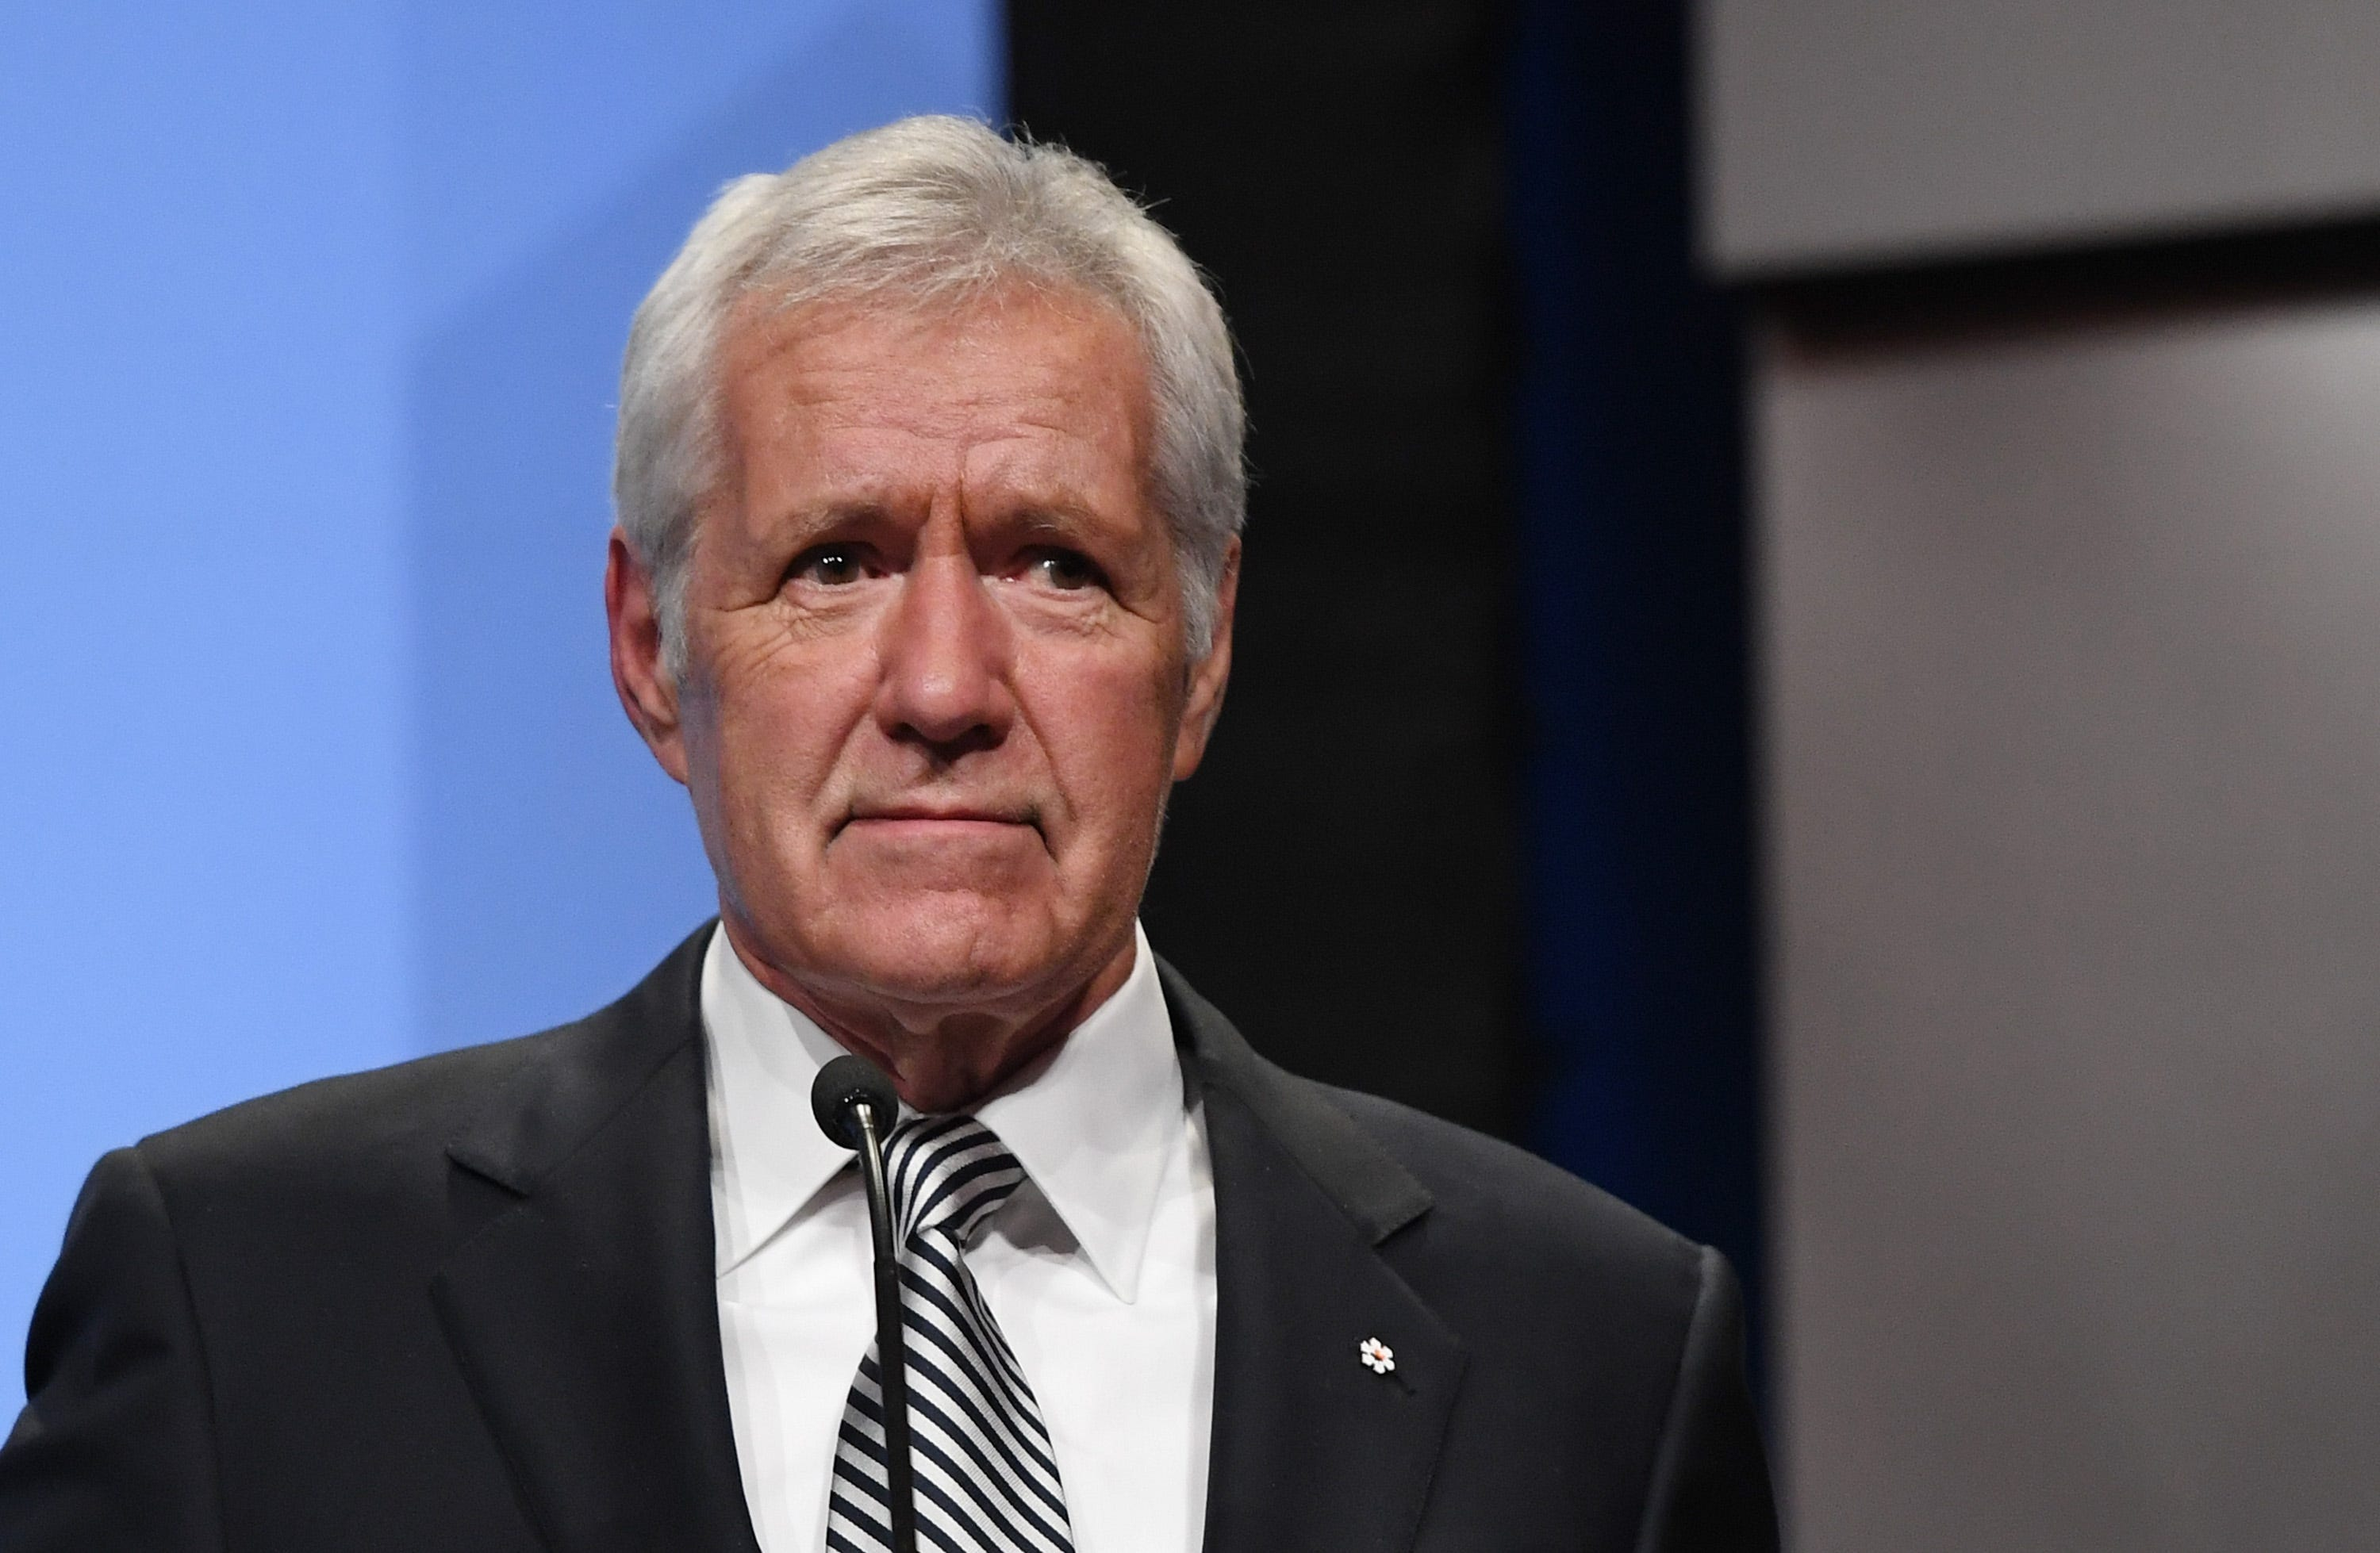 Jeopardy' host Alex Trebek thanks supporters amid cancer battle